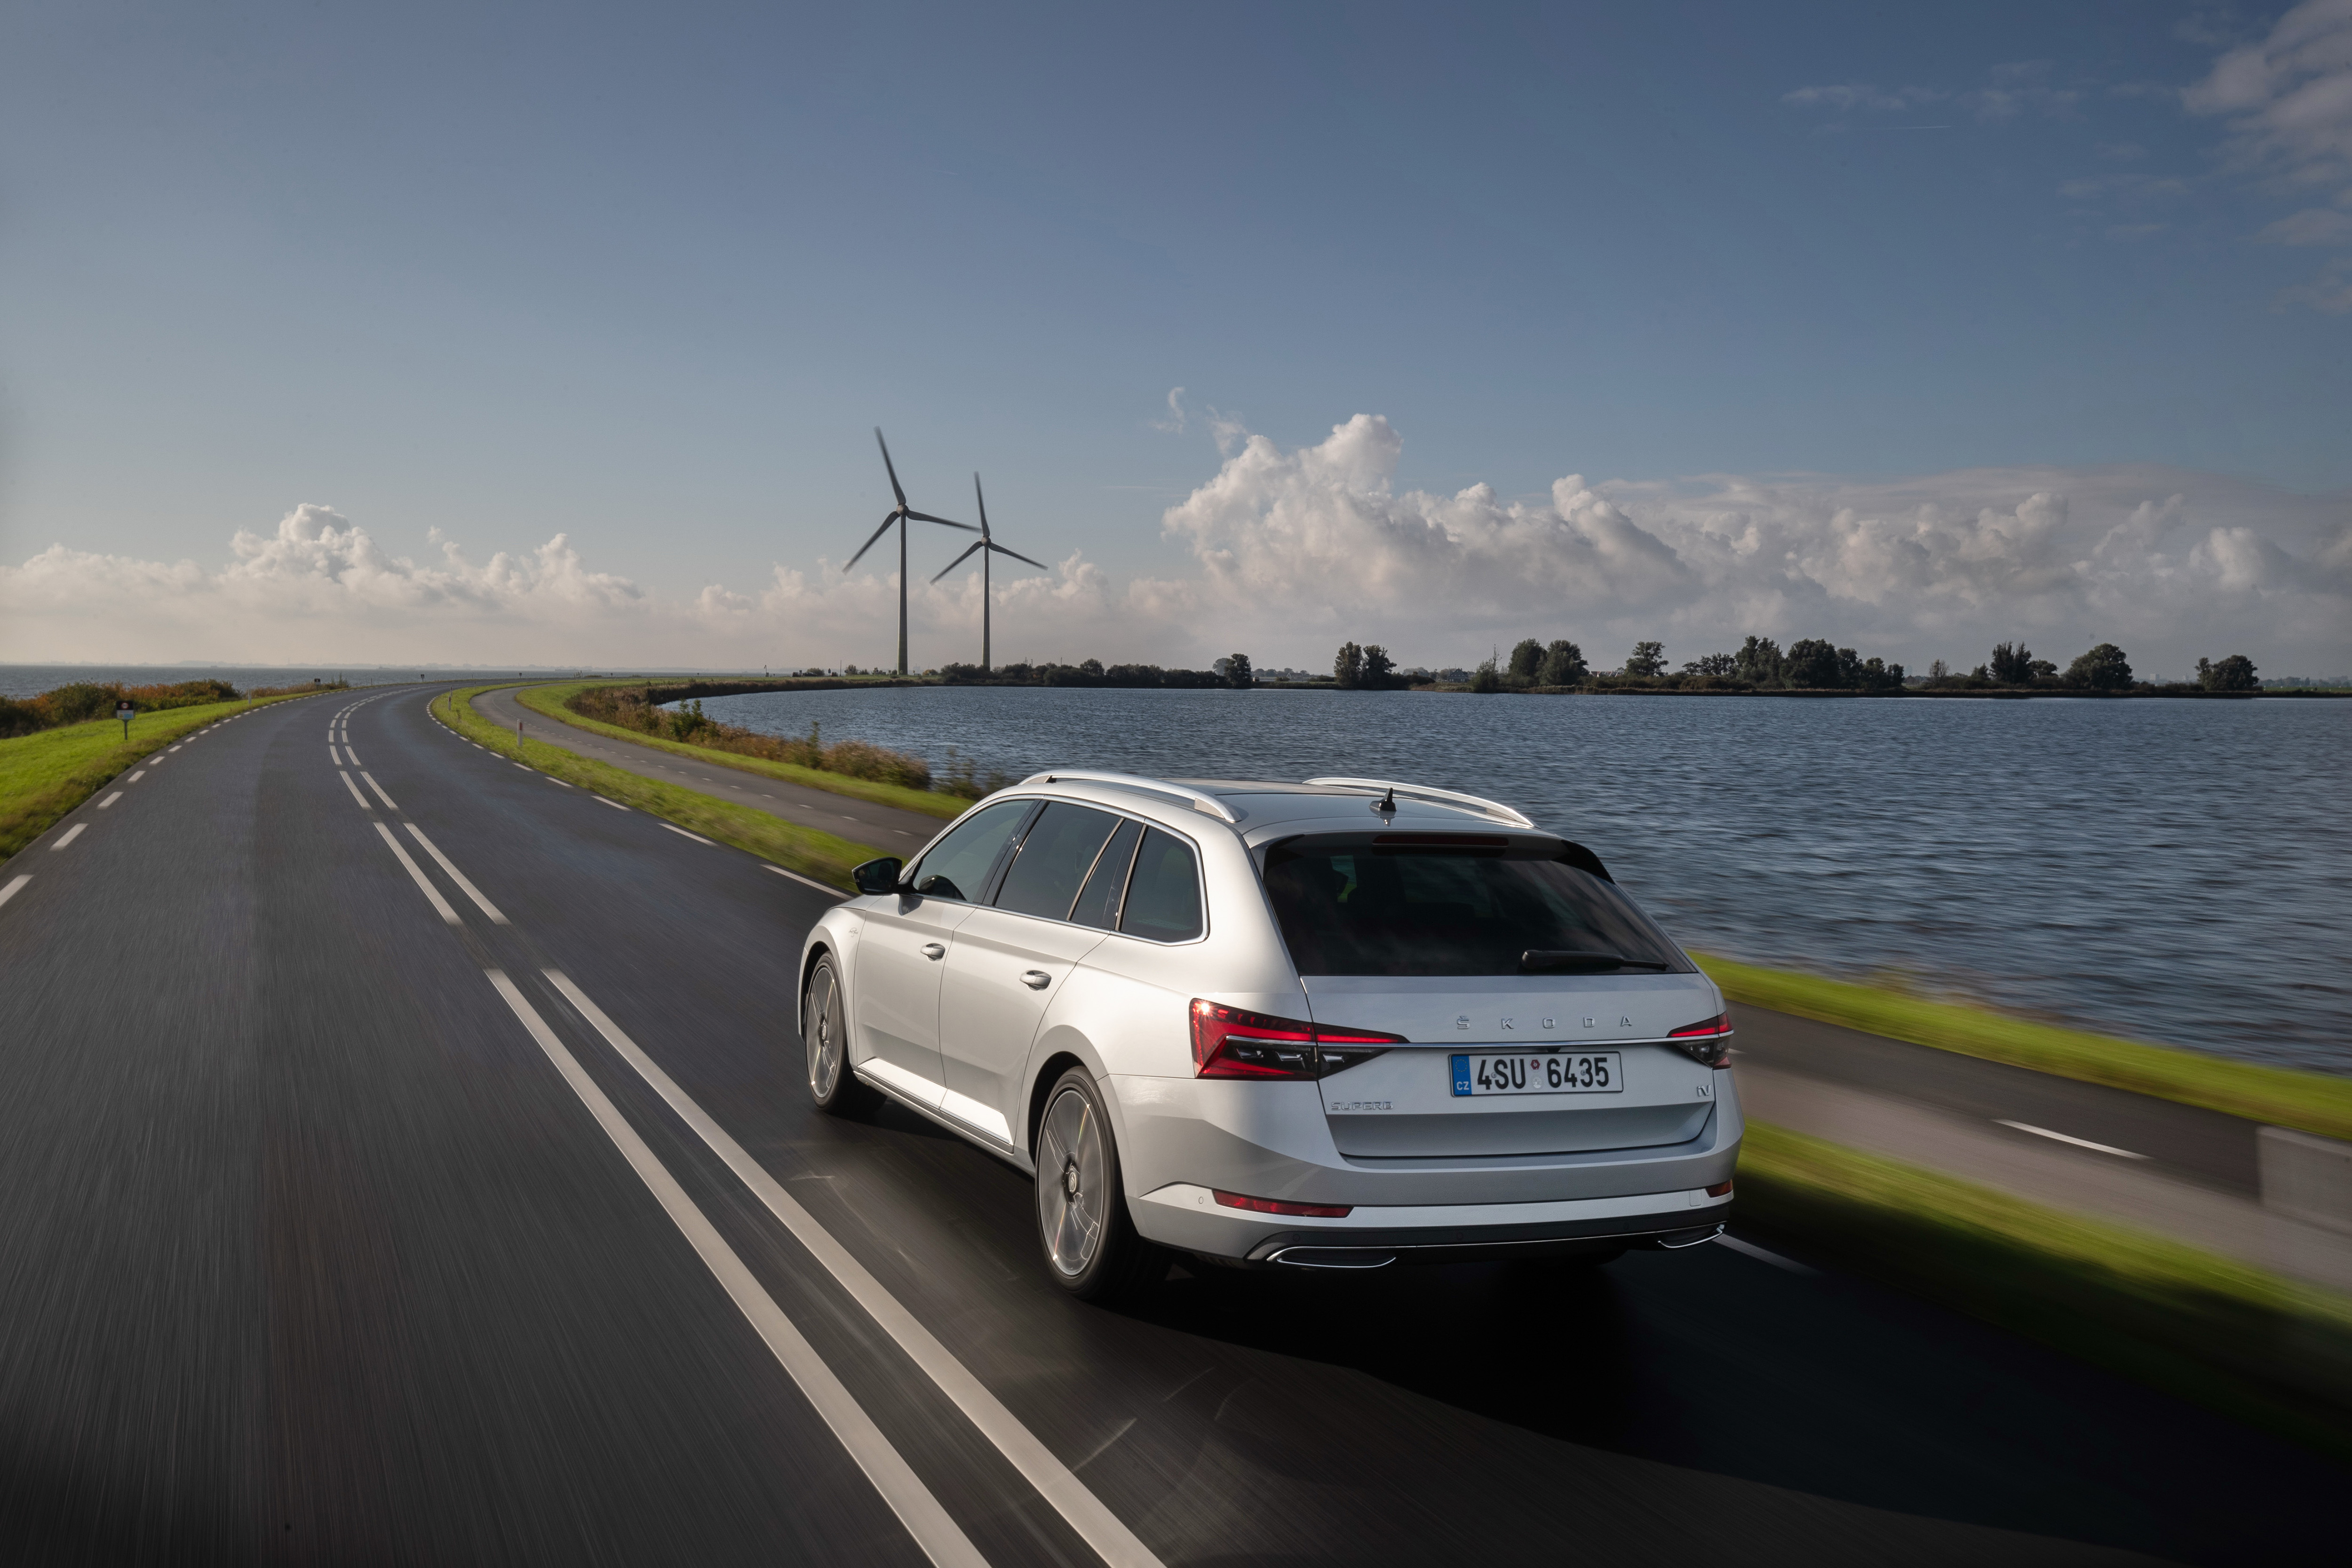 """SKODA ENYAQ iV and SKODA SUPERB COMBI win six awards in """"Family Cars of the Year"""" readers' poll - Image 1"""